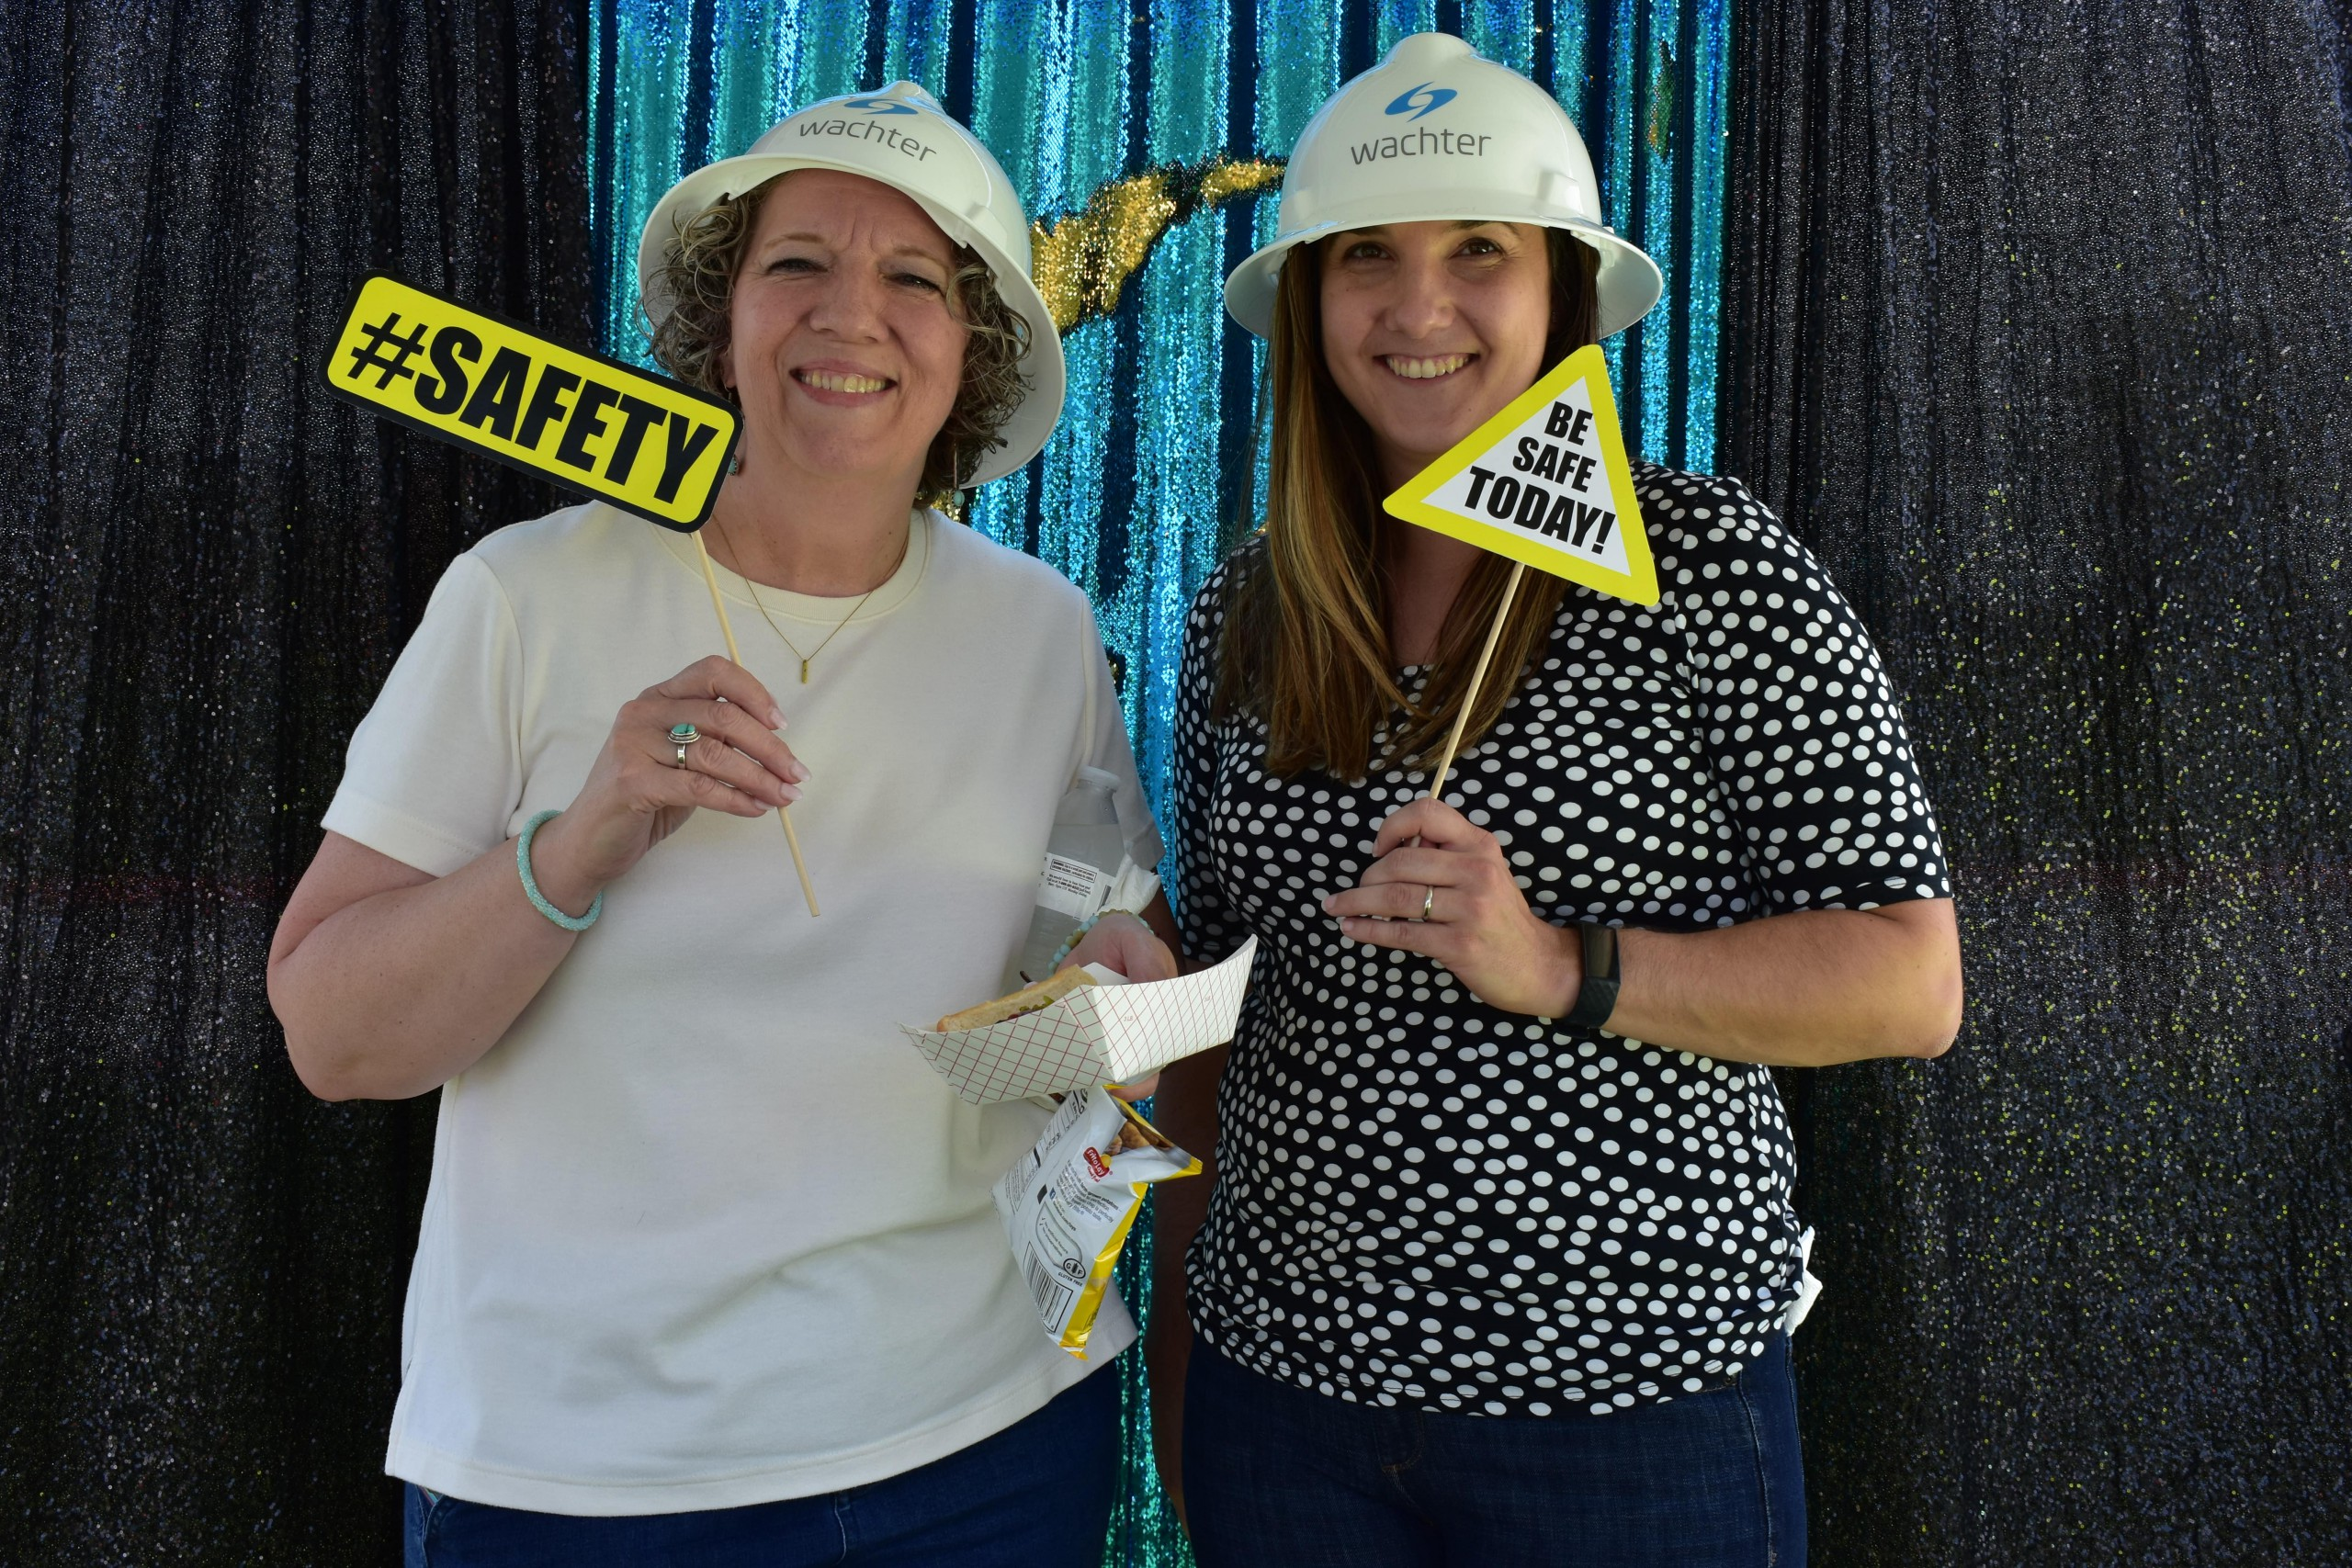 Employee appreciation for safety at the safety picture booth